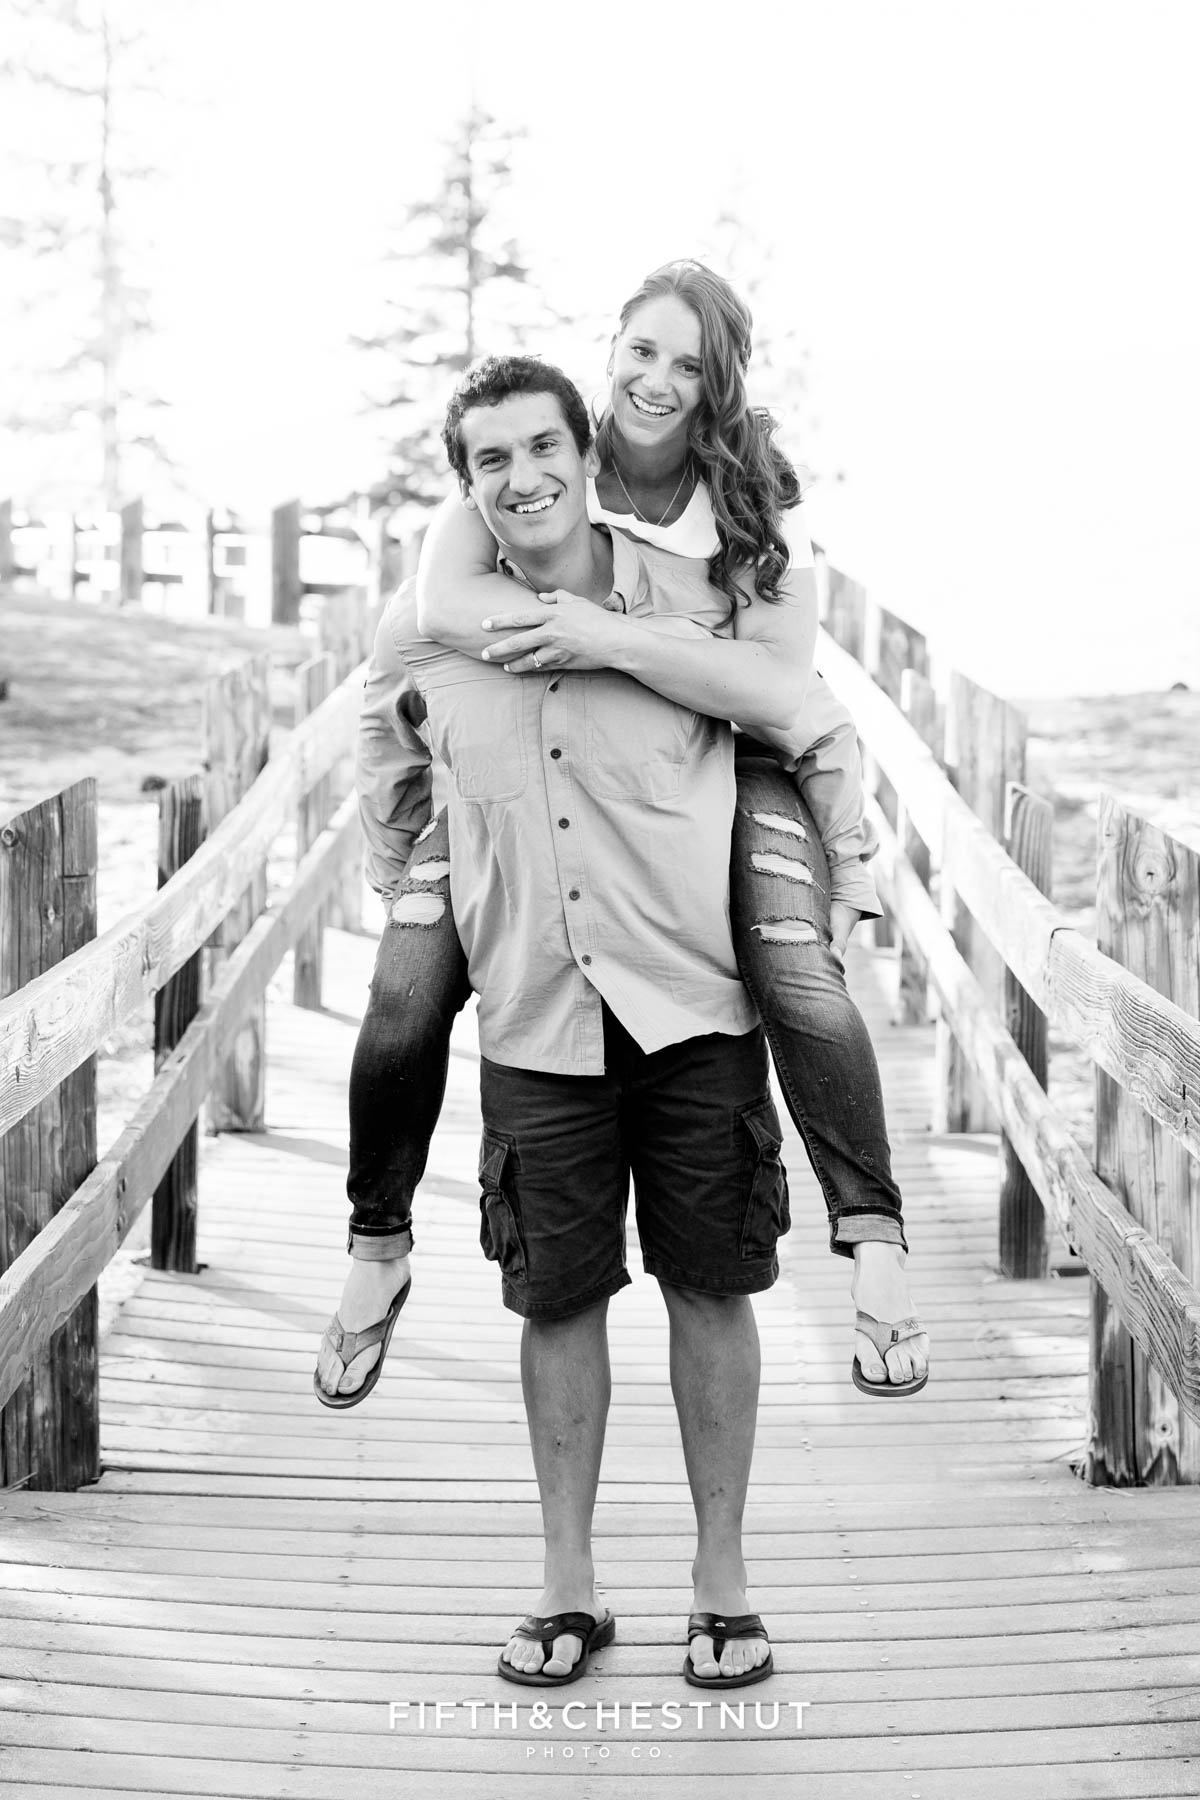 bride-to-be riding piggyback on her groom-to-be at Sand Harbor for their casual summer Tahoe engagement